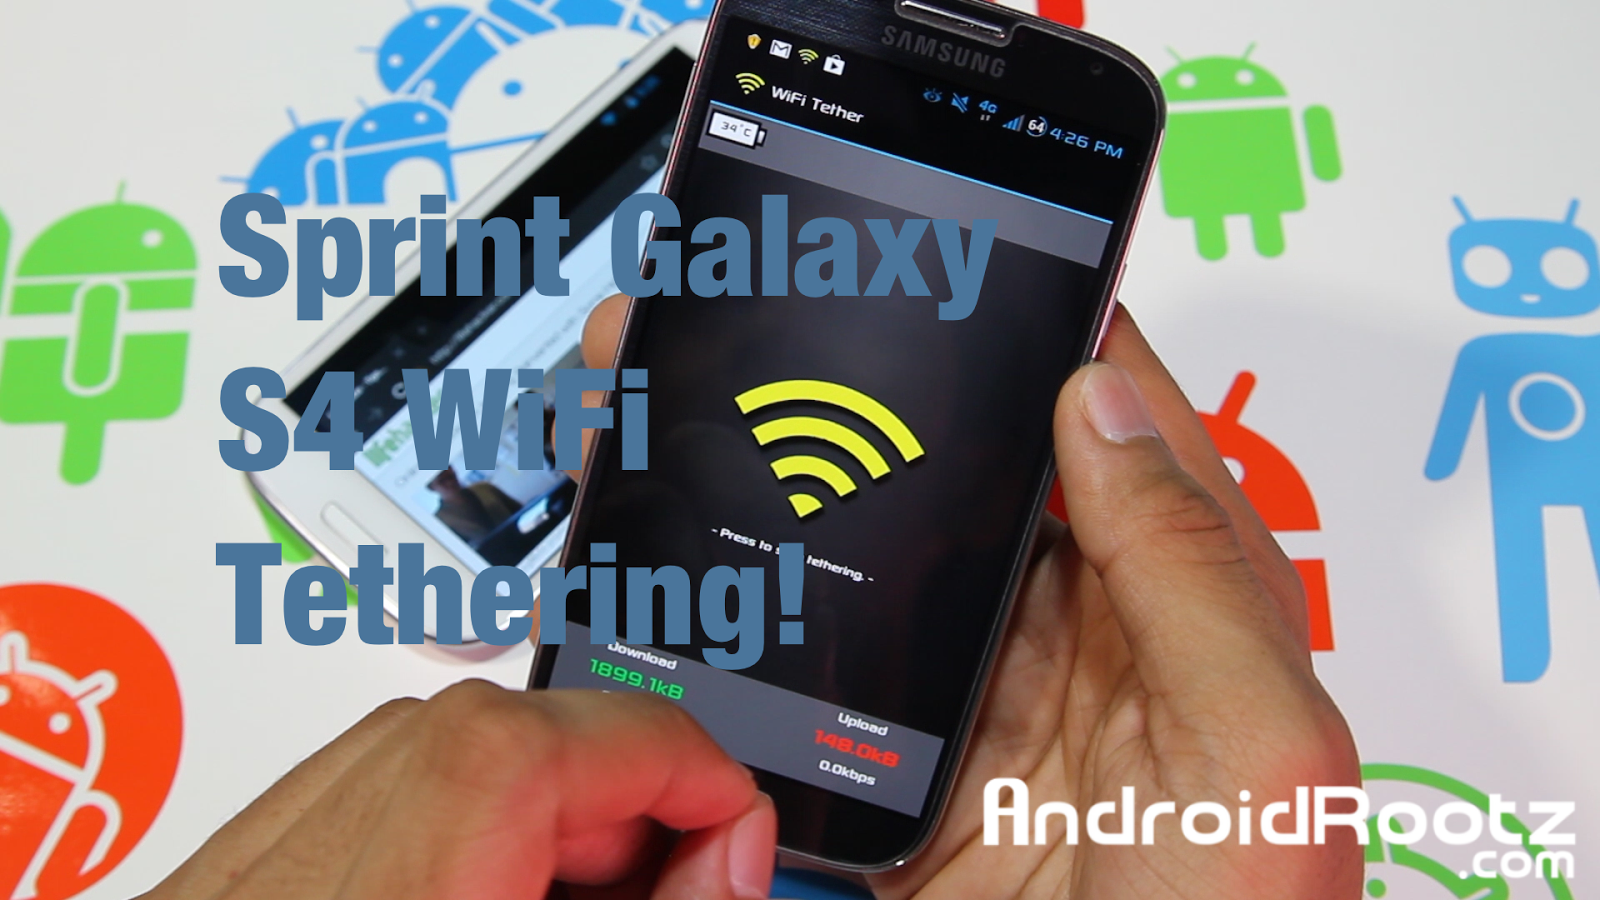 How to Get Free WiFi Tethering/Hotspot on Sprint Galaxy S4